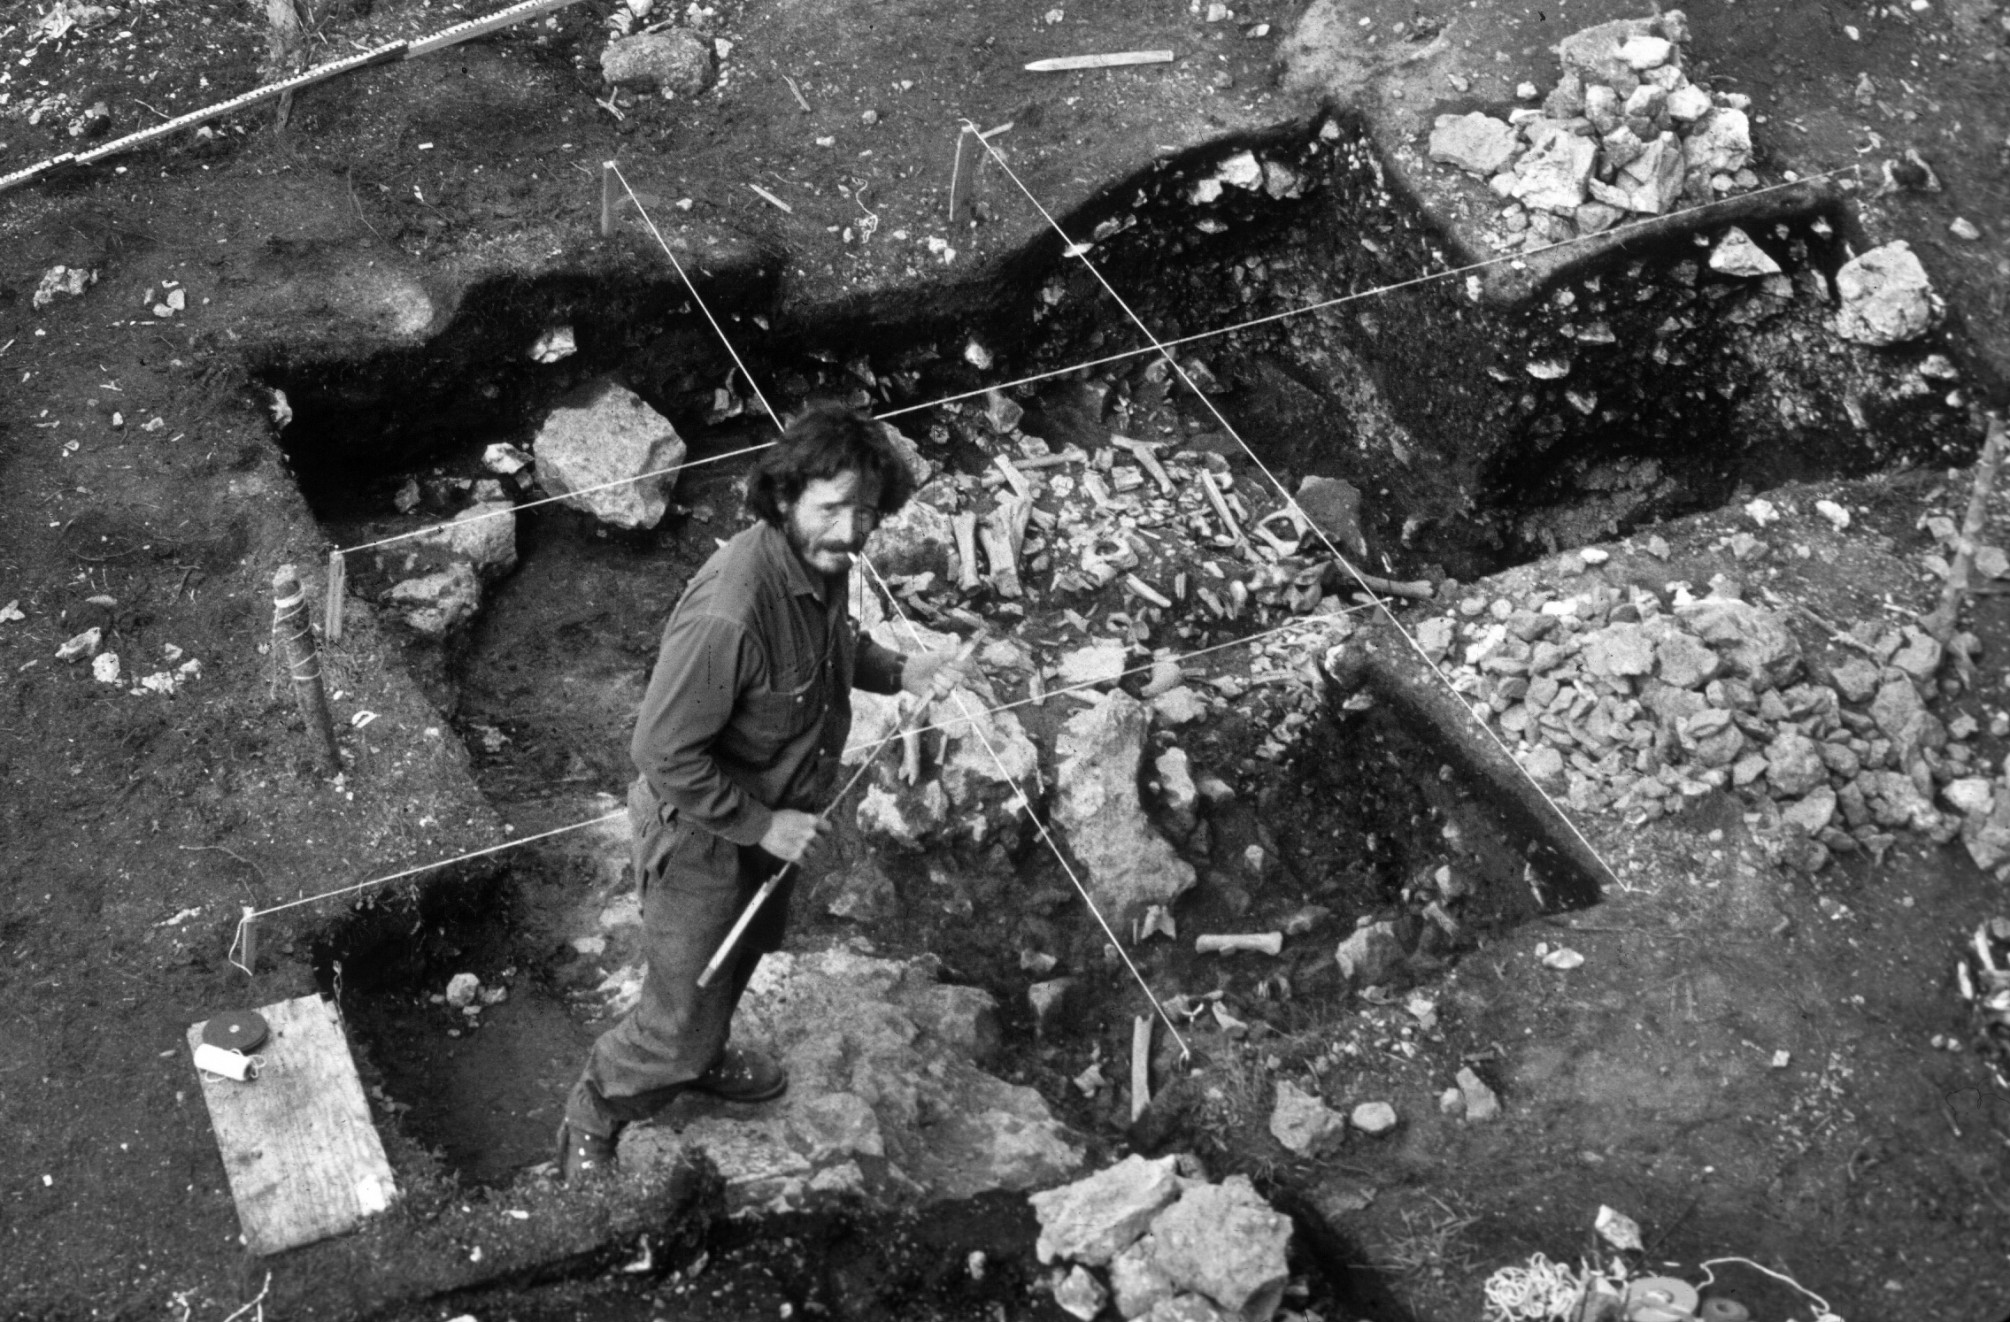 Archaeologist Cinq-Mars excavating at the Bluefish Caves in Yukon, Canada in the 1970s.